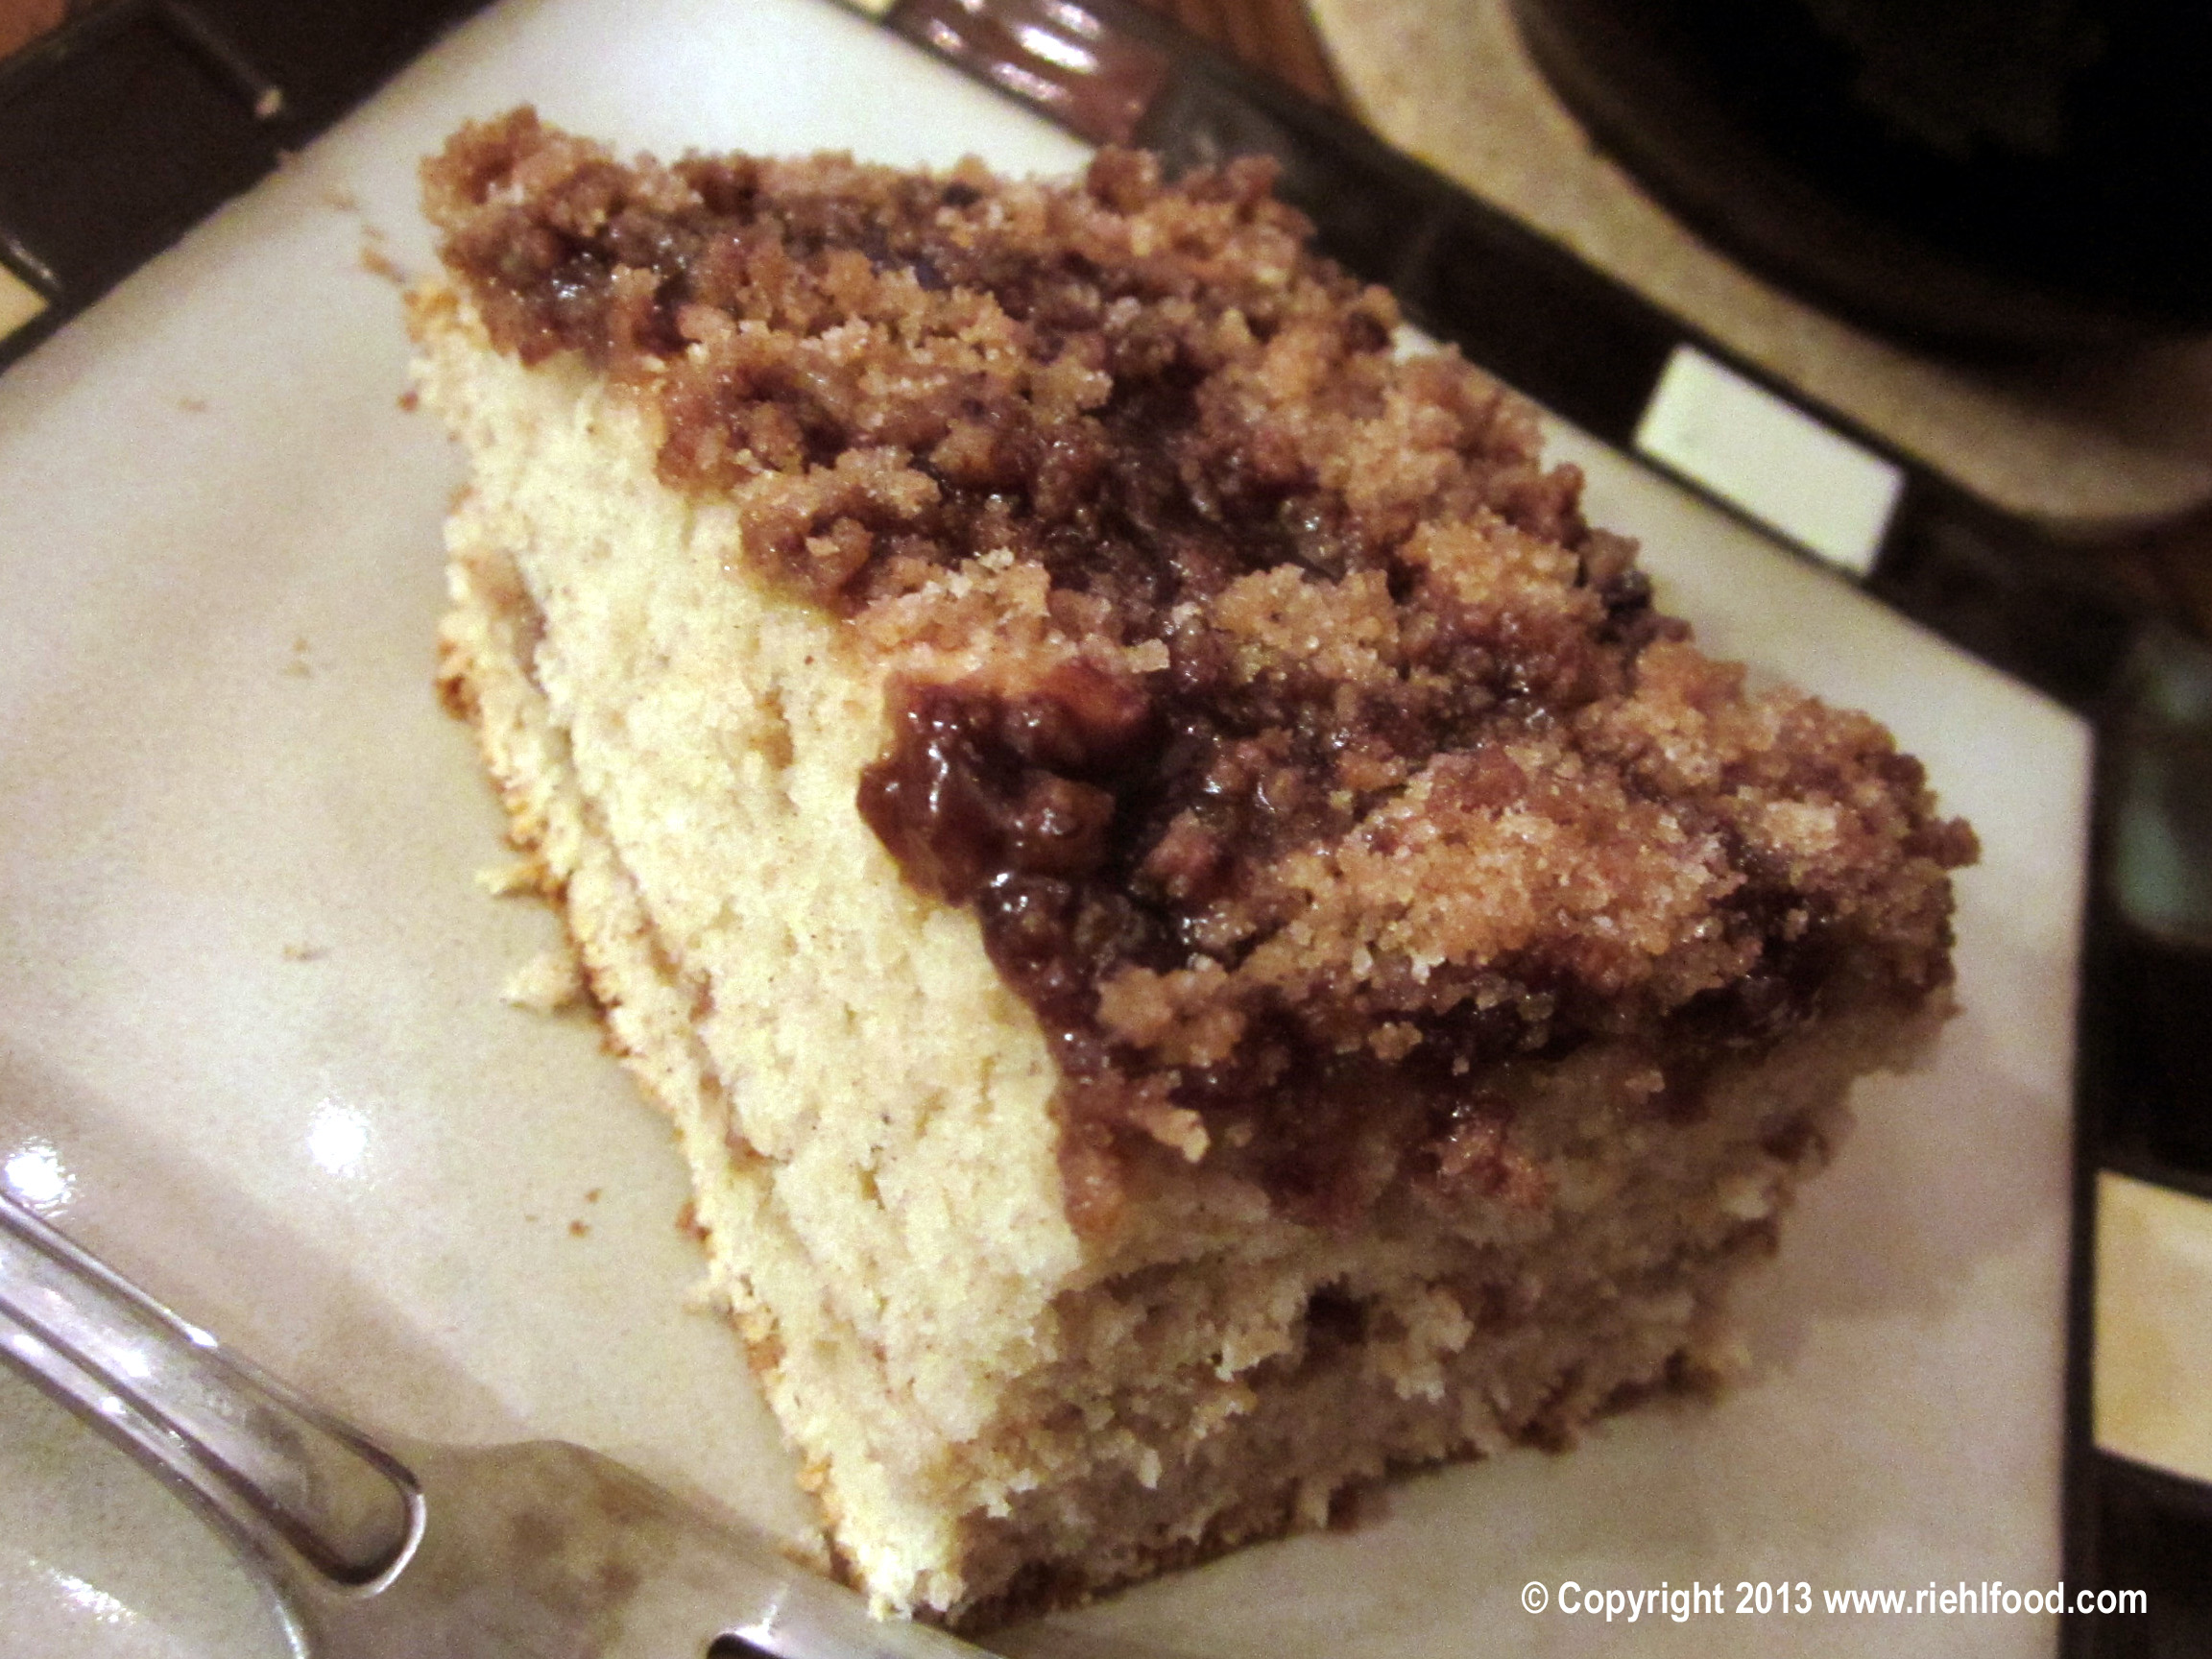 Coffee Cake with Mocha Glaze